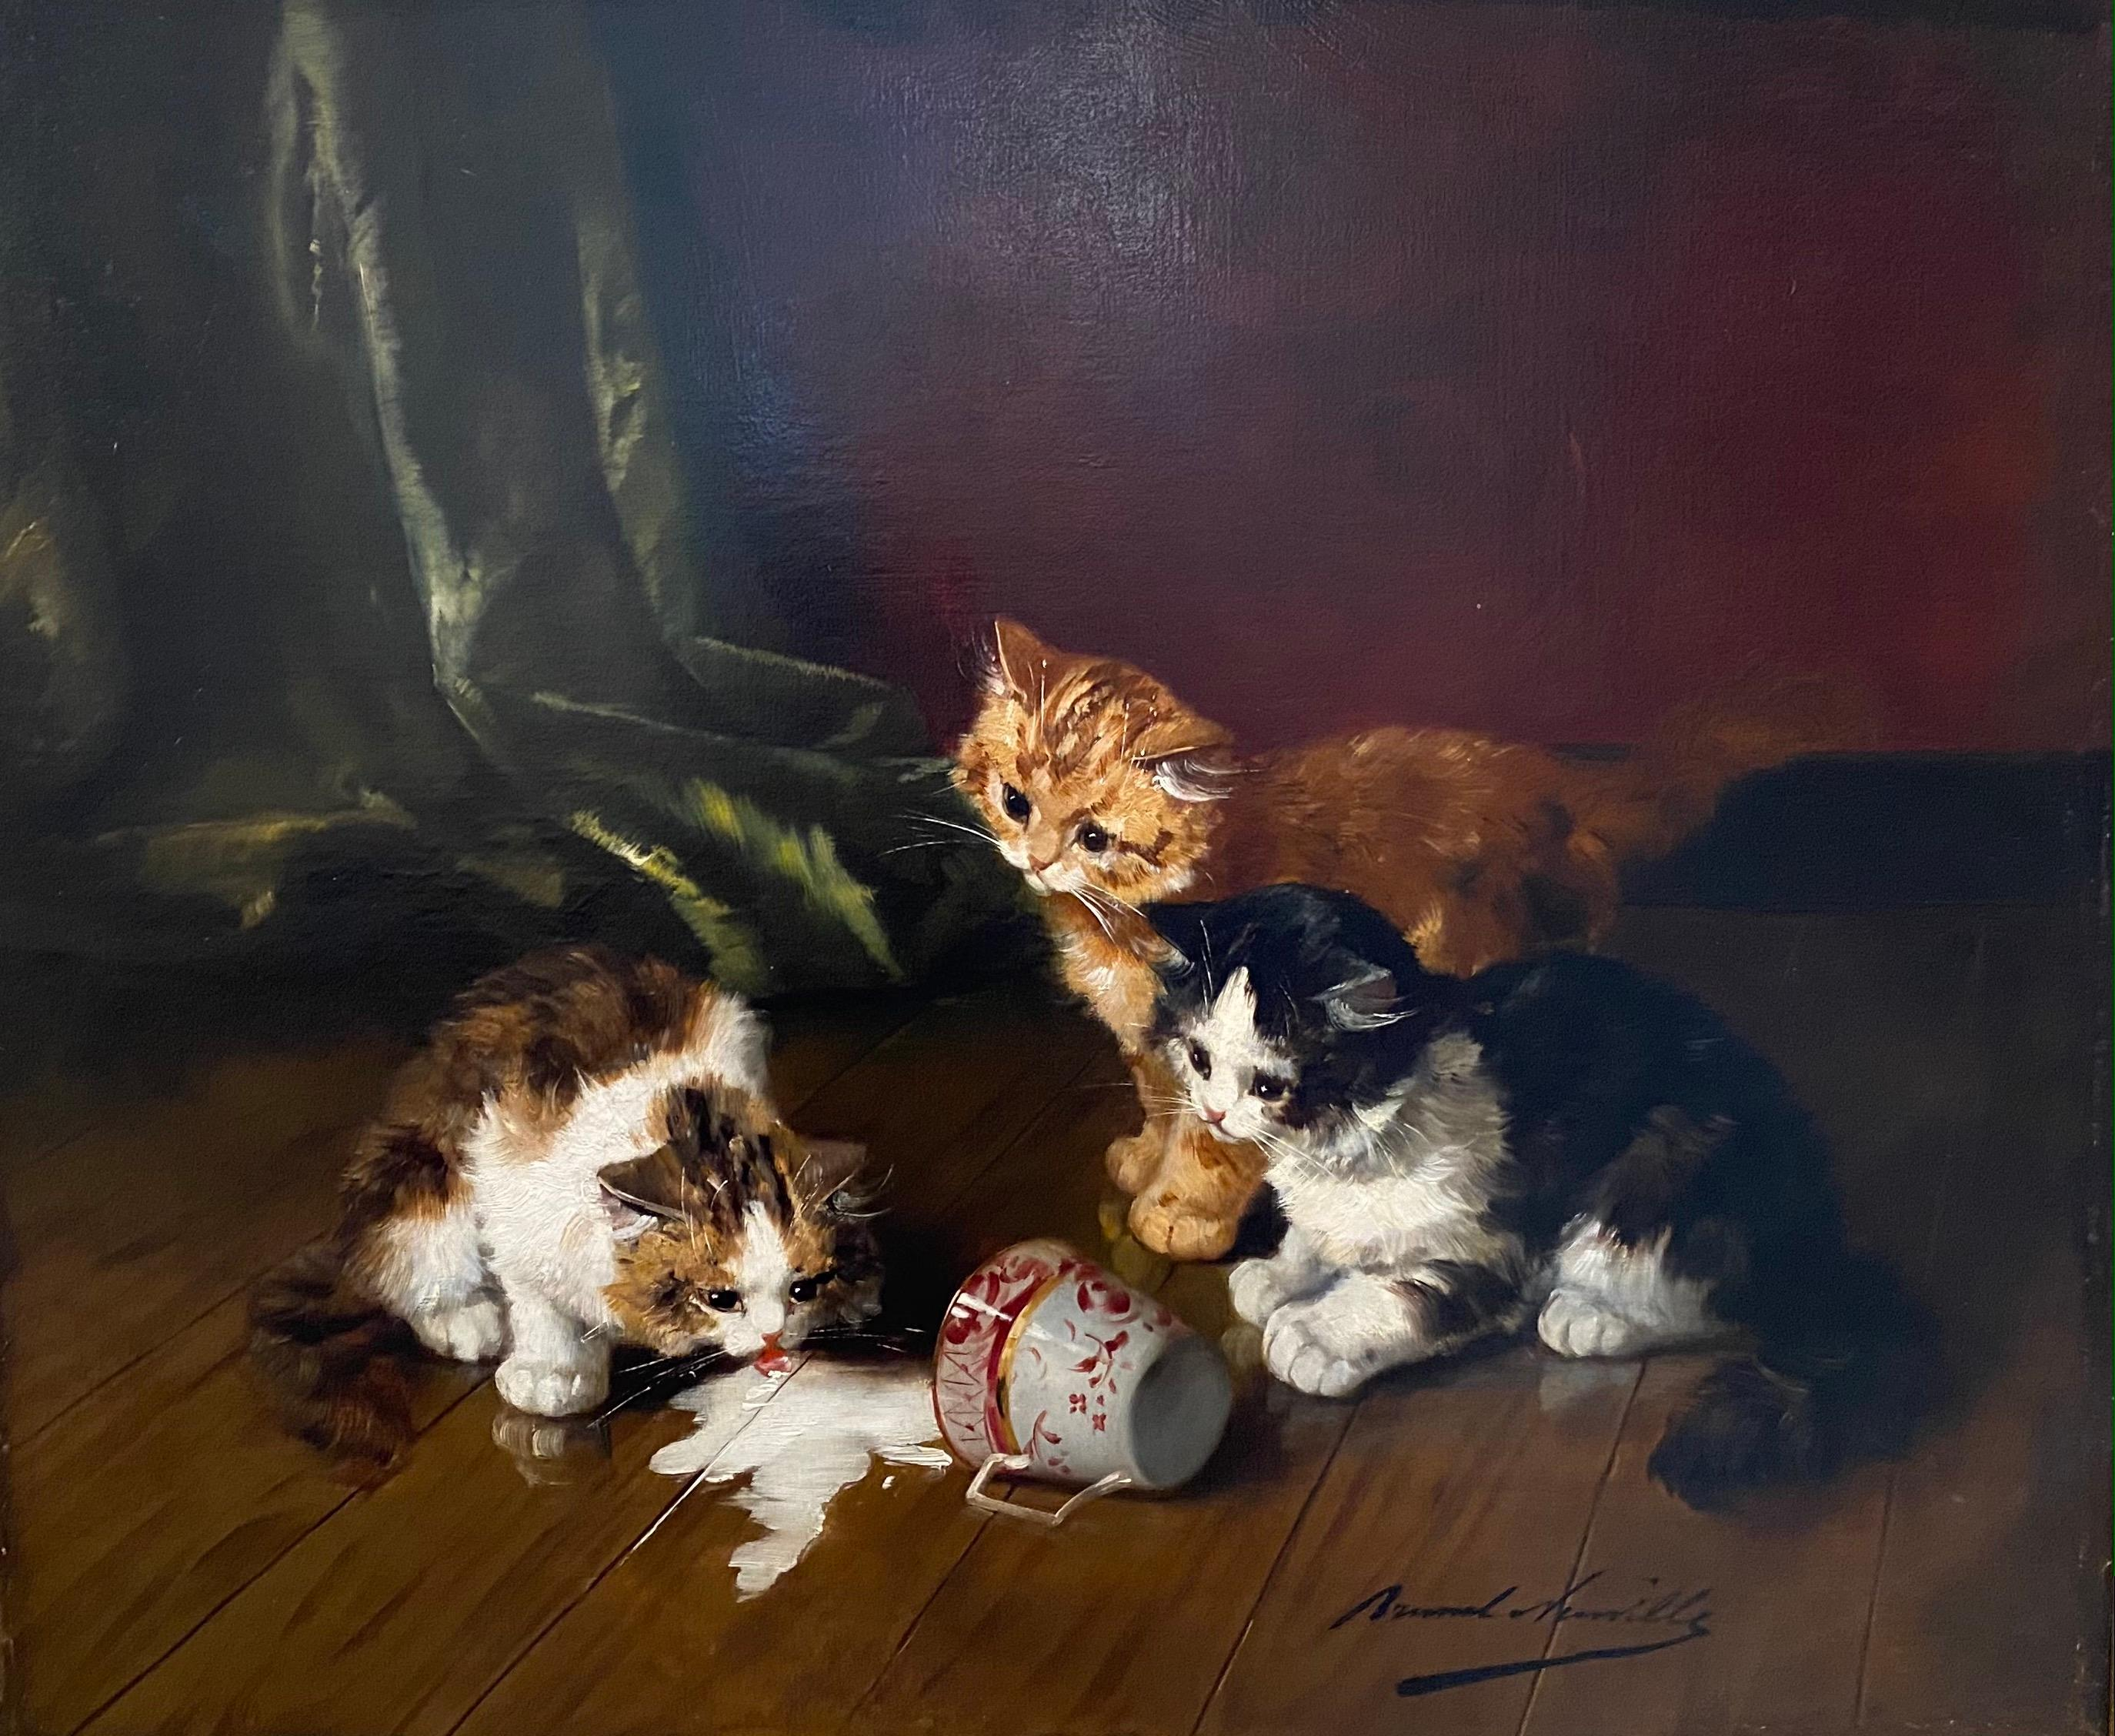 'Spilled Milk' French Interior Painting of Kittens & Cats drinking from a teacup